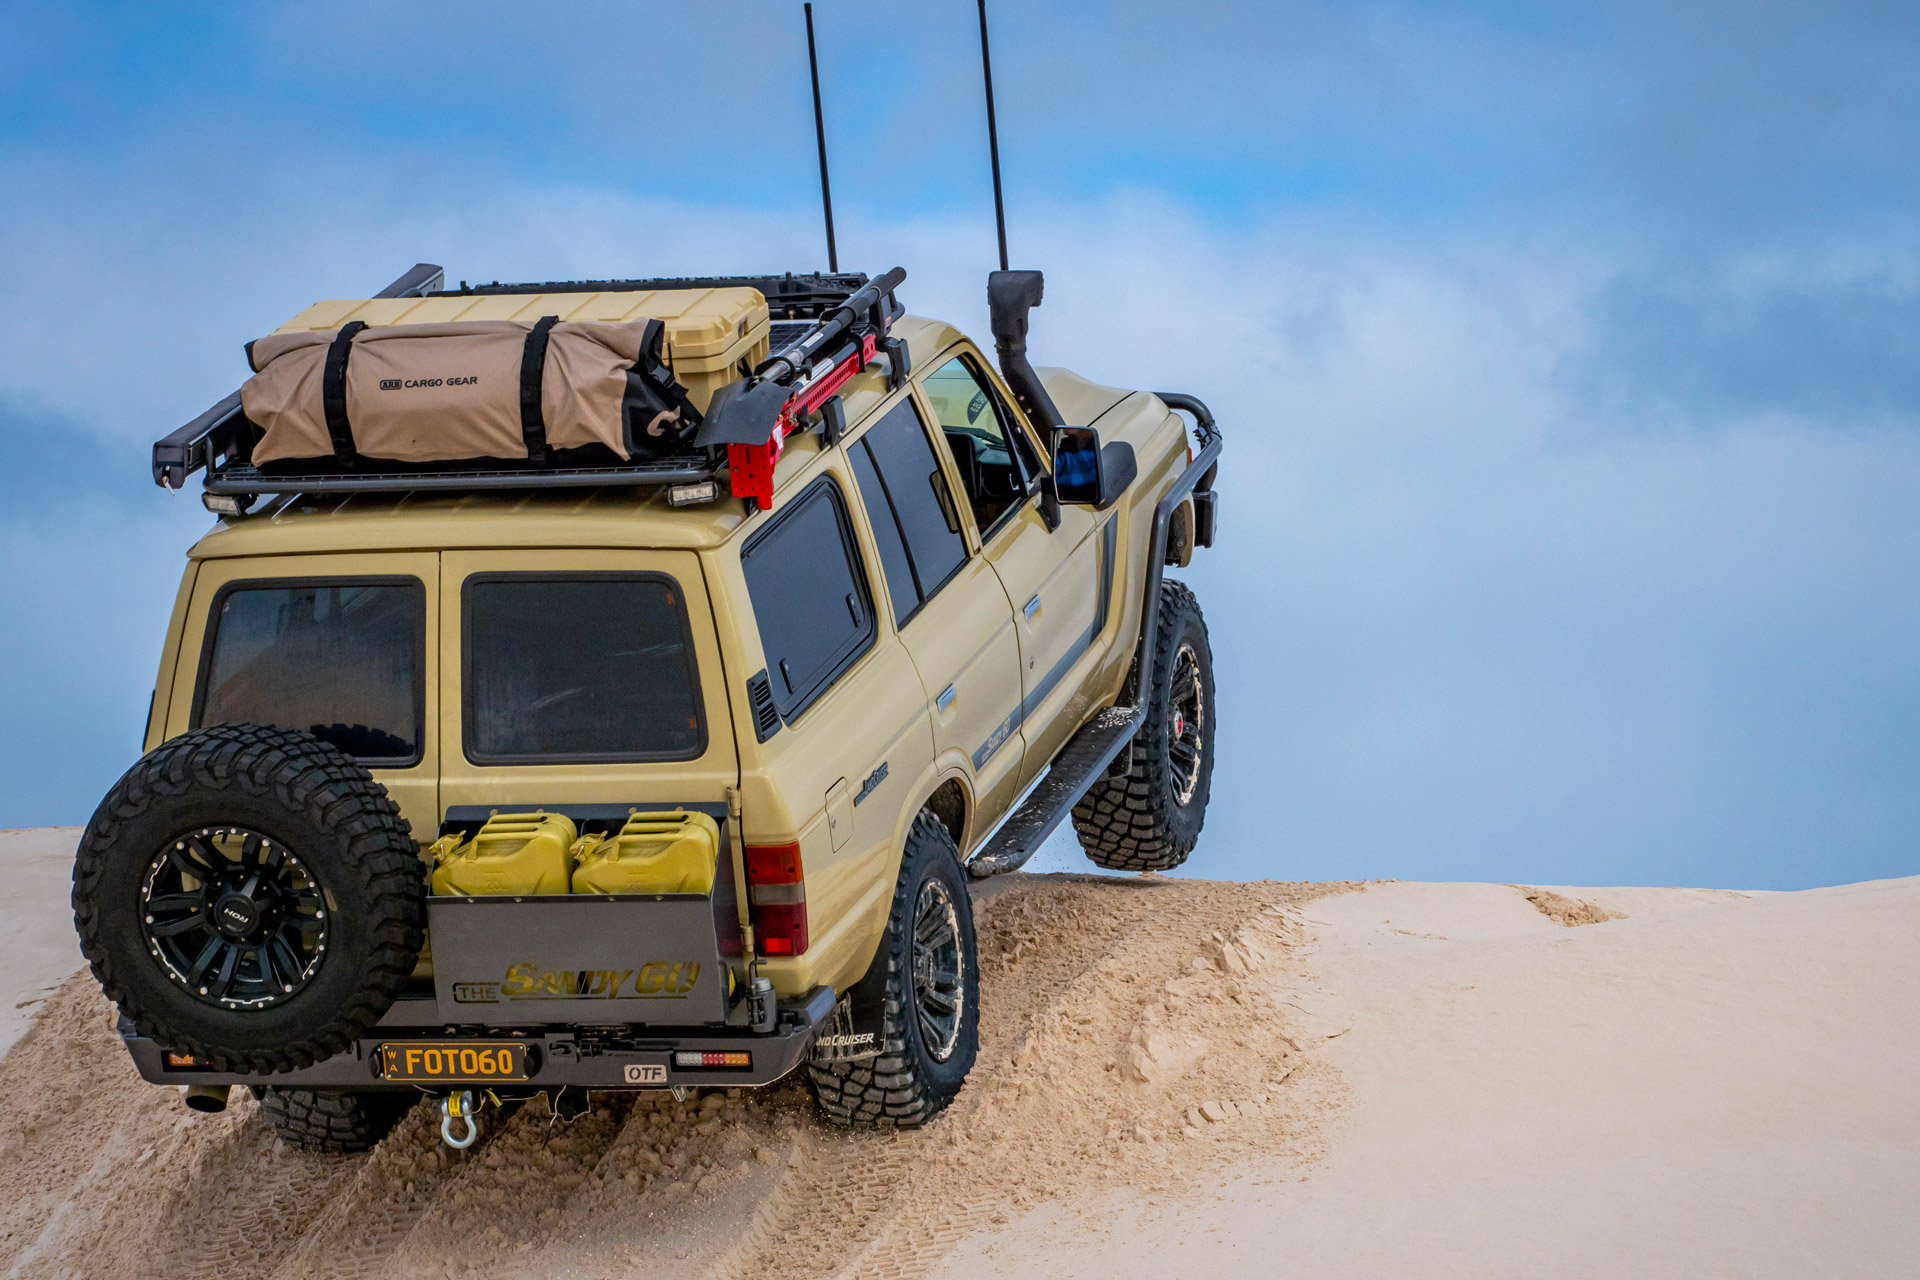 ROH Vapour wheels on Sandy 60 Series LandCruiser on the beach getting airborne